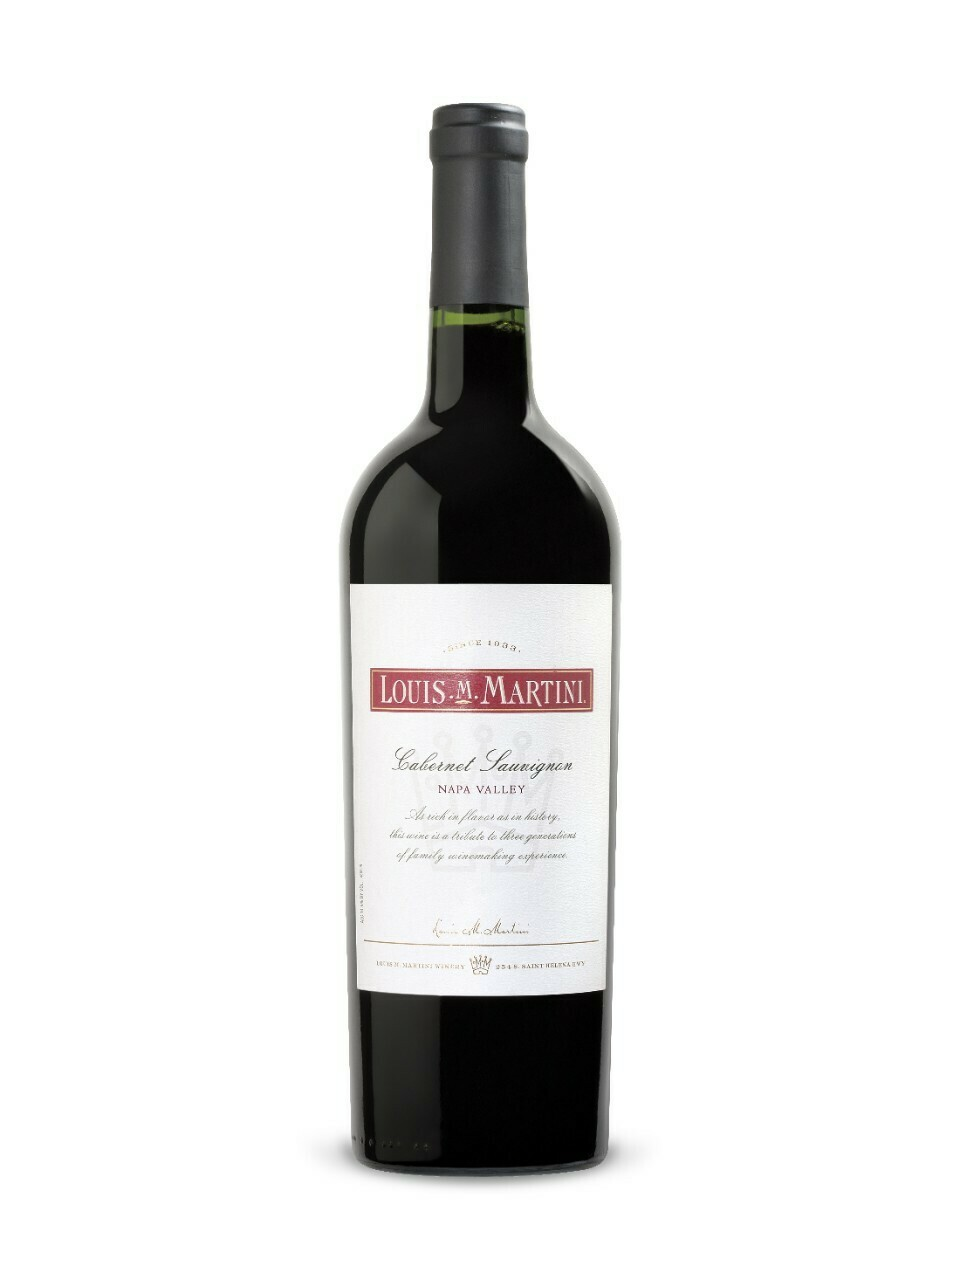 Louis Martini Napa Valley Cabernet Sauvignon